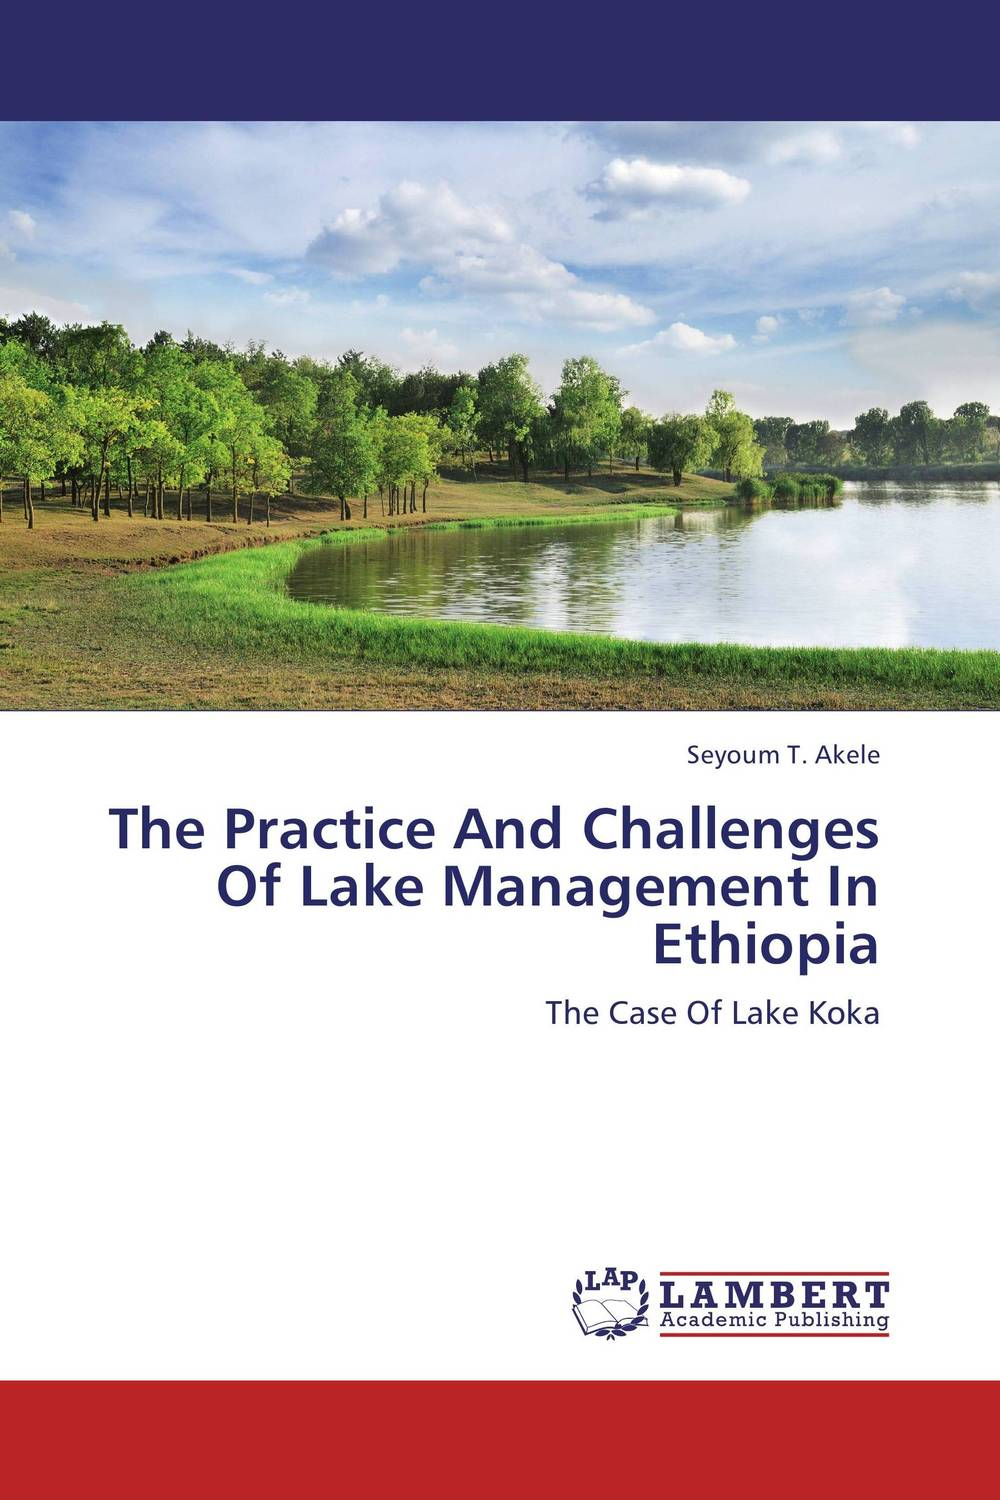 где купить The Practice And Challenges Of Lake Management In Ethiopia по лучшей цене